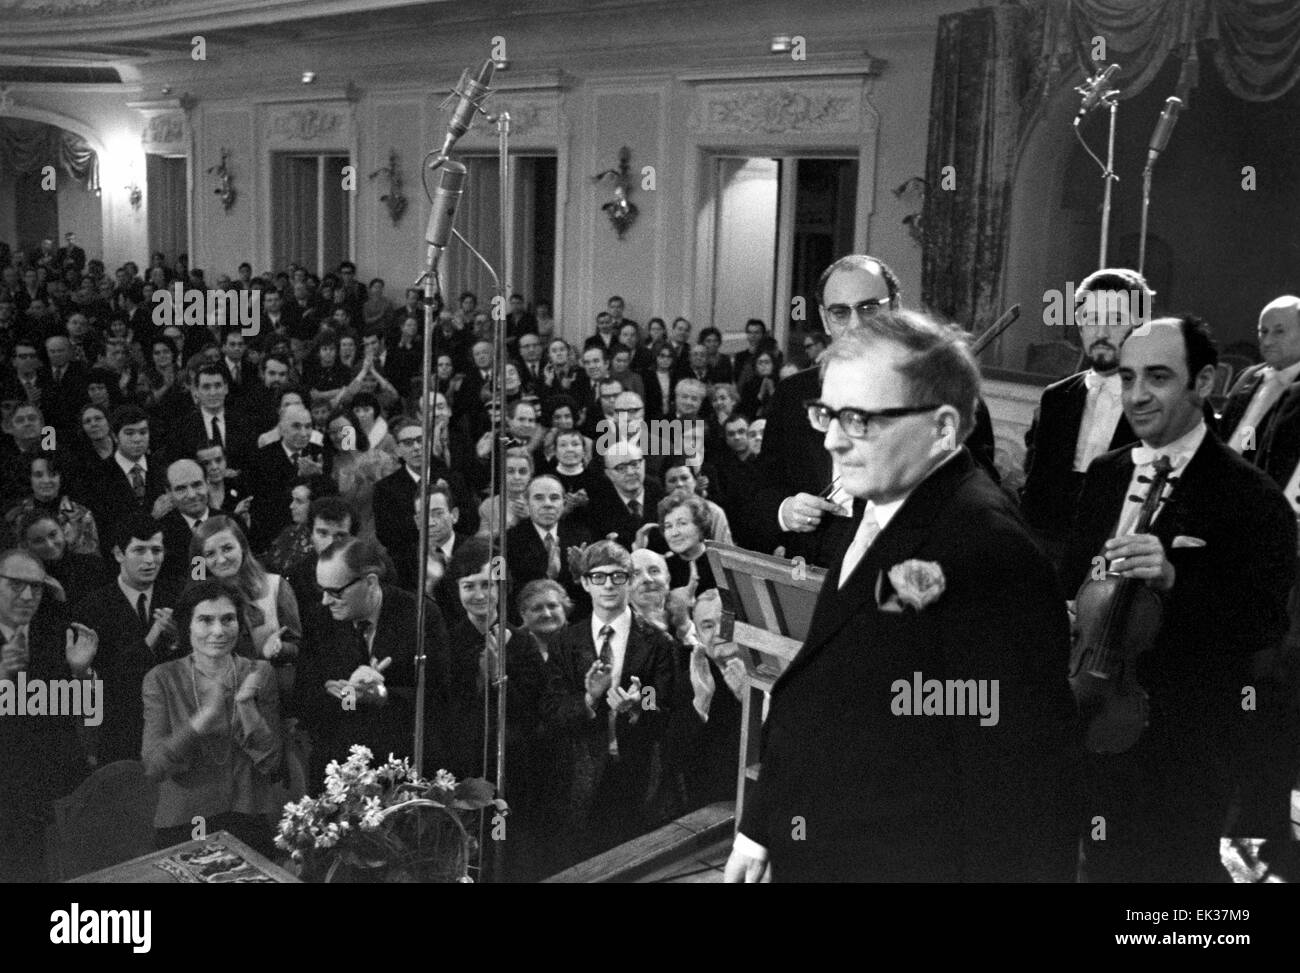 ITAR-TASS: USSR, MOSCOW. The audience greets Dmitri Shostakovich with standingovation after premiere of his 15th - Stock Image